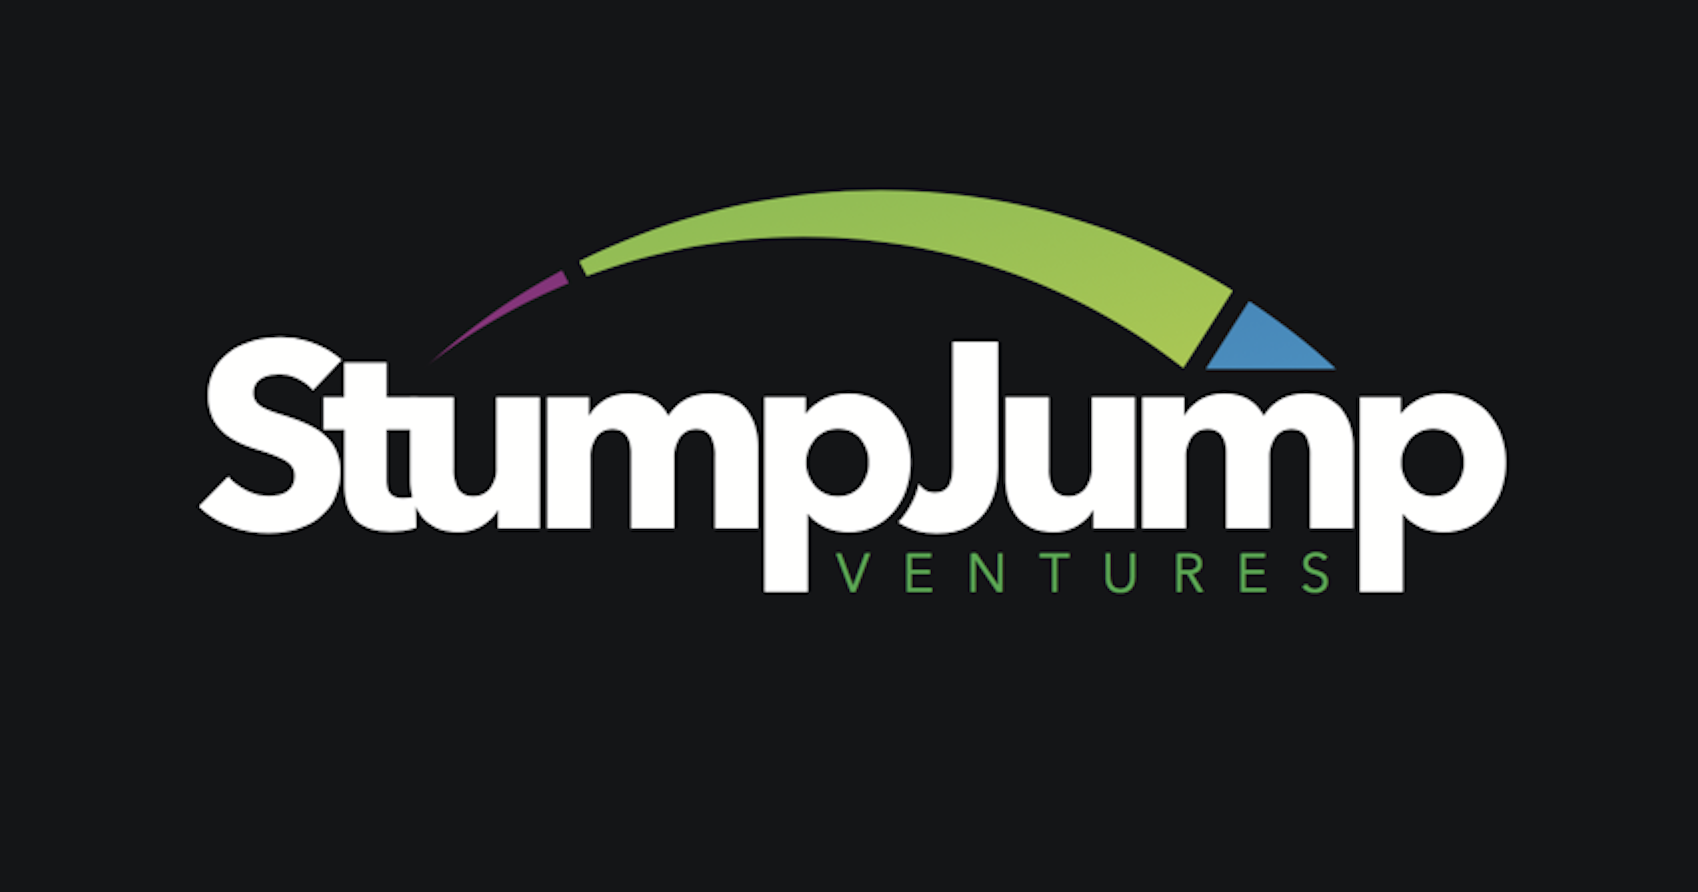 StumpJump Ventures - The investment arm of StumpJump, this organization is an accelerator that invests in promising young businesses, helping them grow in order to achieve sustainable success and properly establish themselves in their particular industry.